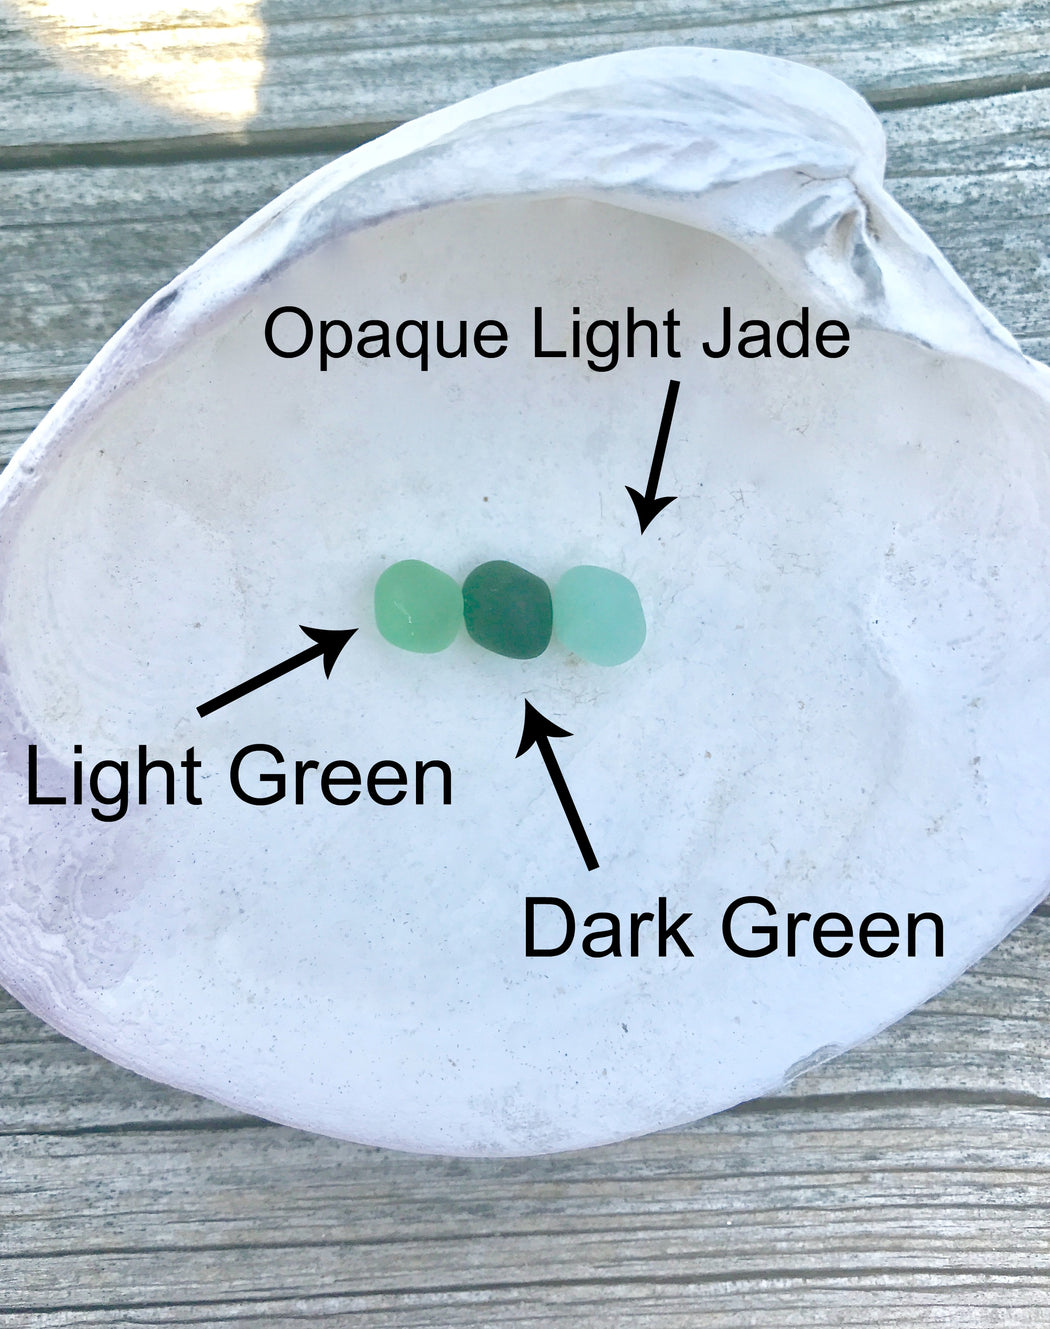 light green, dark green, and opaque light jade sea glass color options